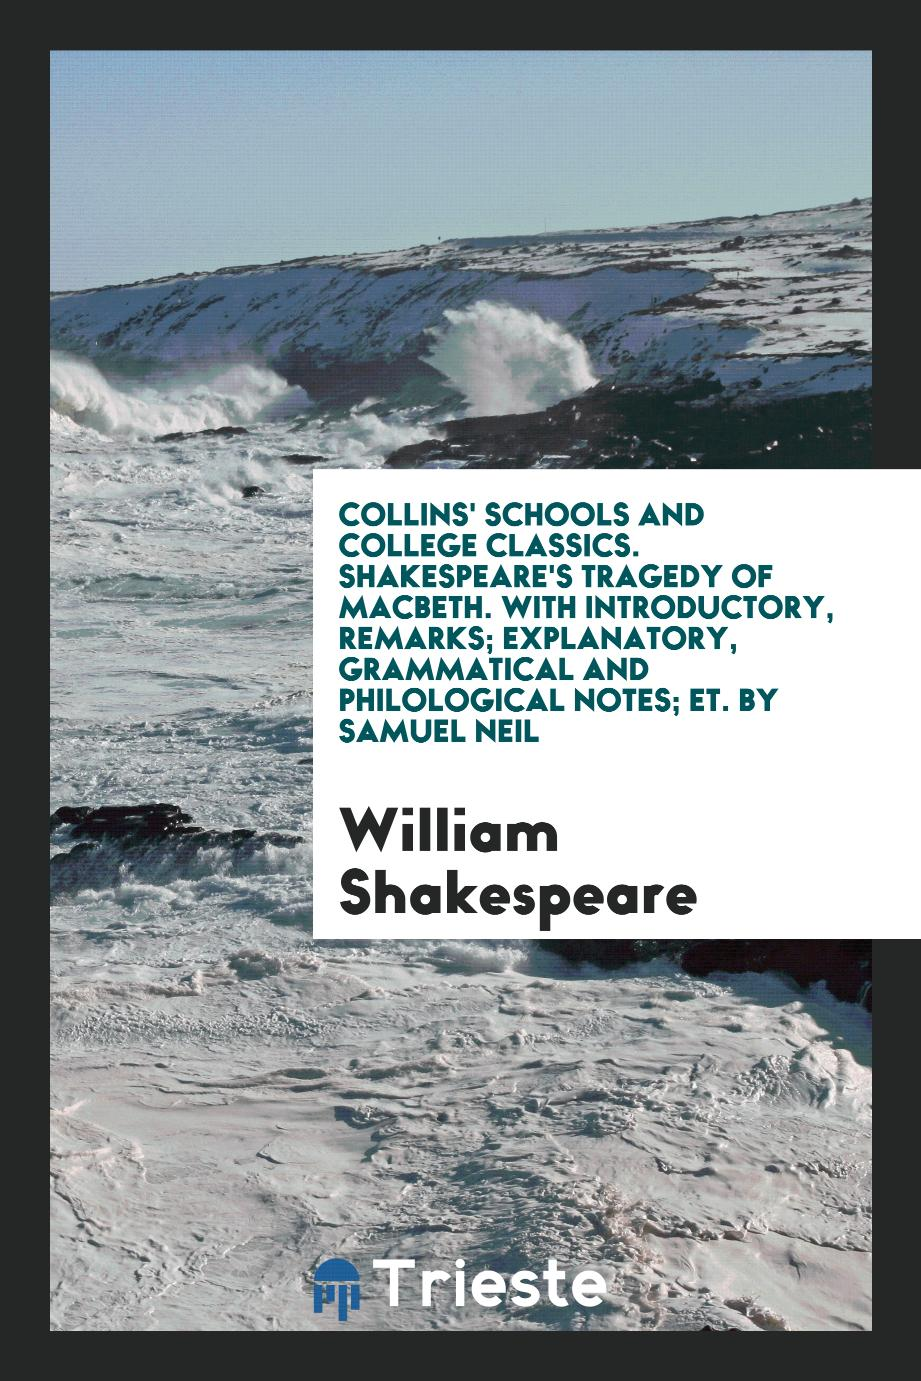 Collins' Schools and College Classics. Shakespeare's tragedy of Macbeth. With Introductory, Remarks; Explanatory, Grammatical and Philological Notes; Etс. By Samuel Neil